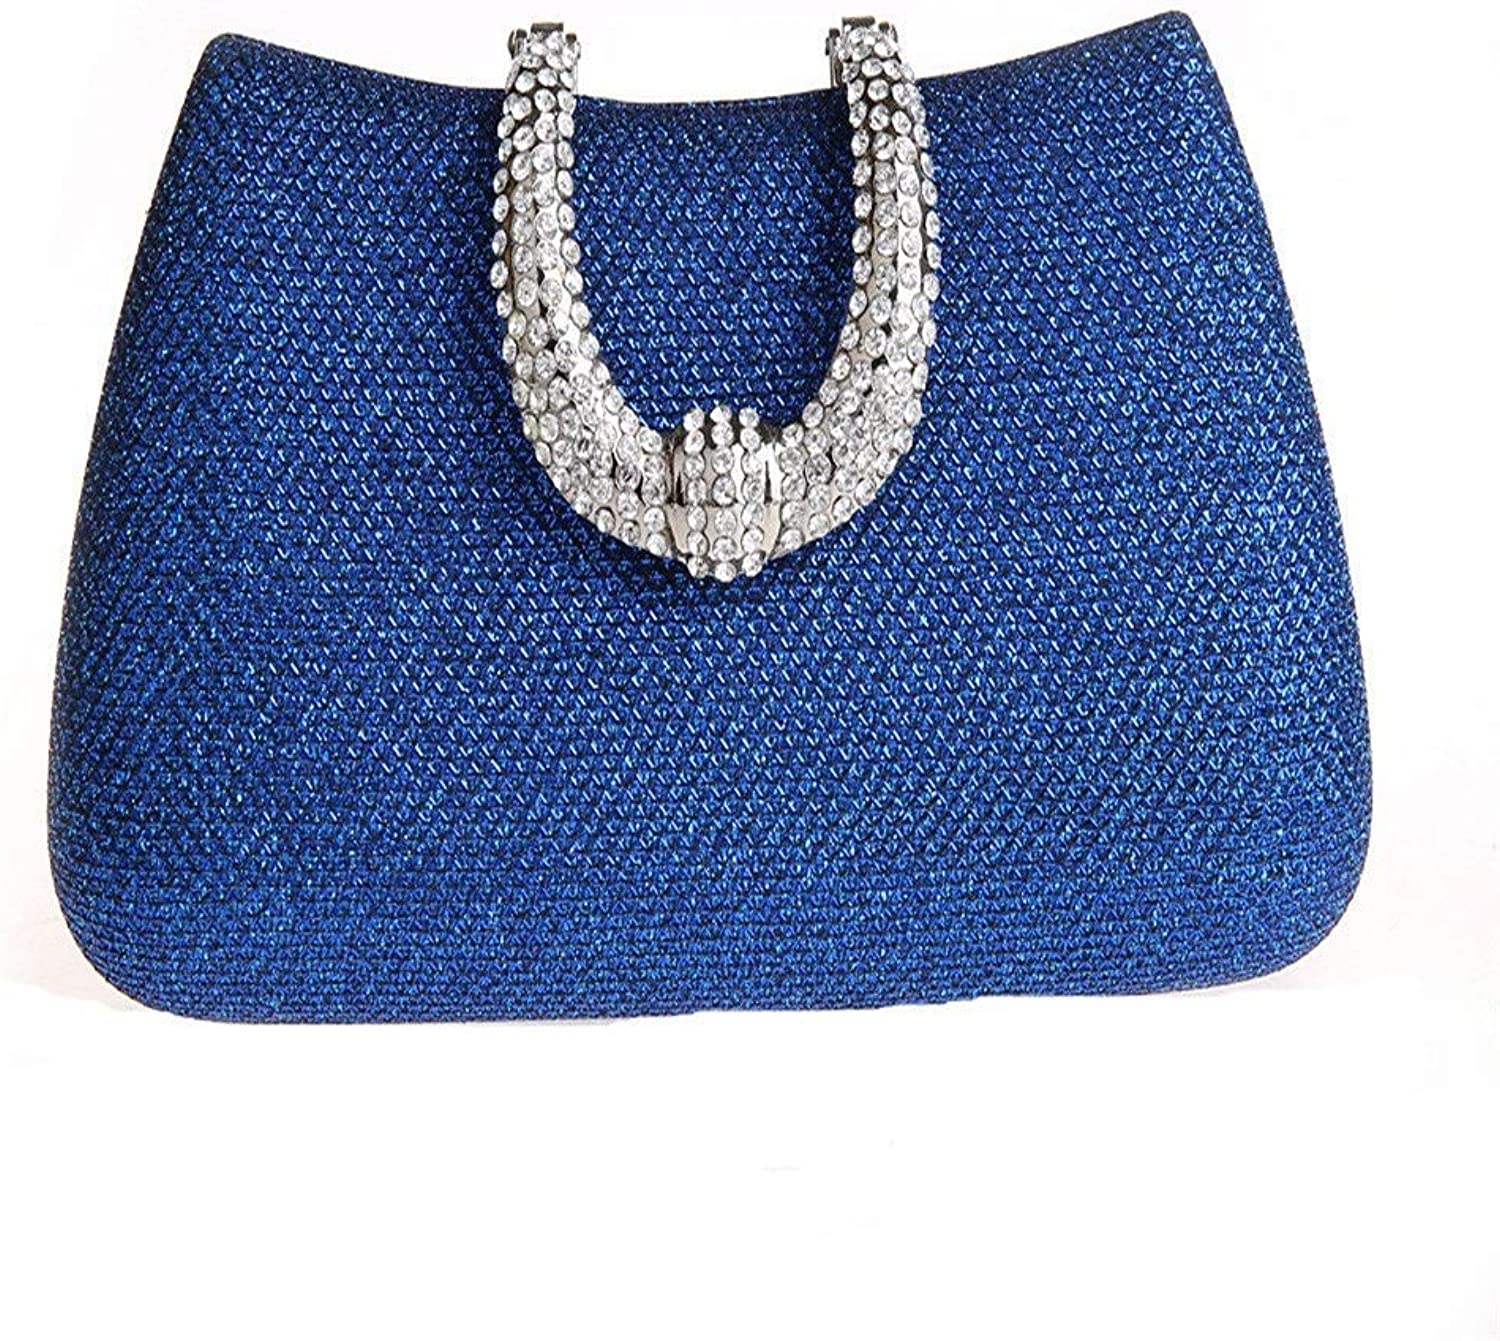 Clutch Bag Luxury Crystal Clutch Women Rhinestone Evening BagCocktail Party Evening Bag (color   bluee, Size   Free Size)